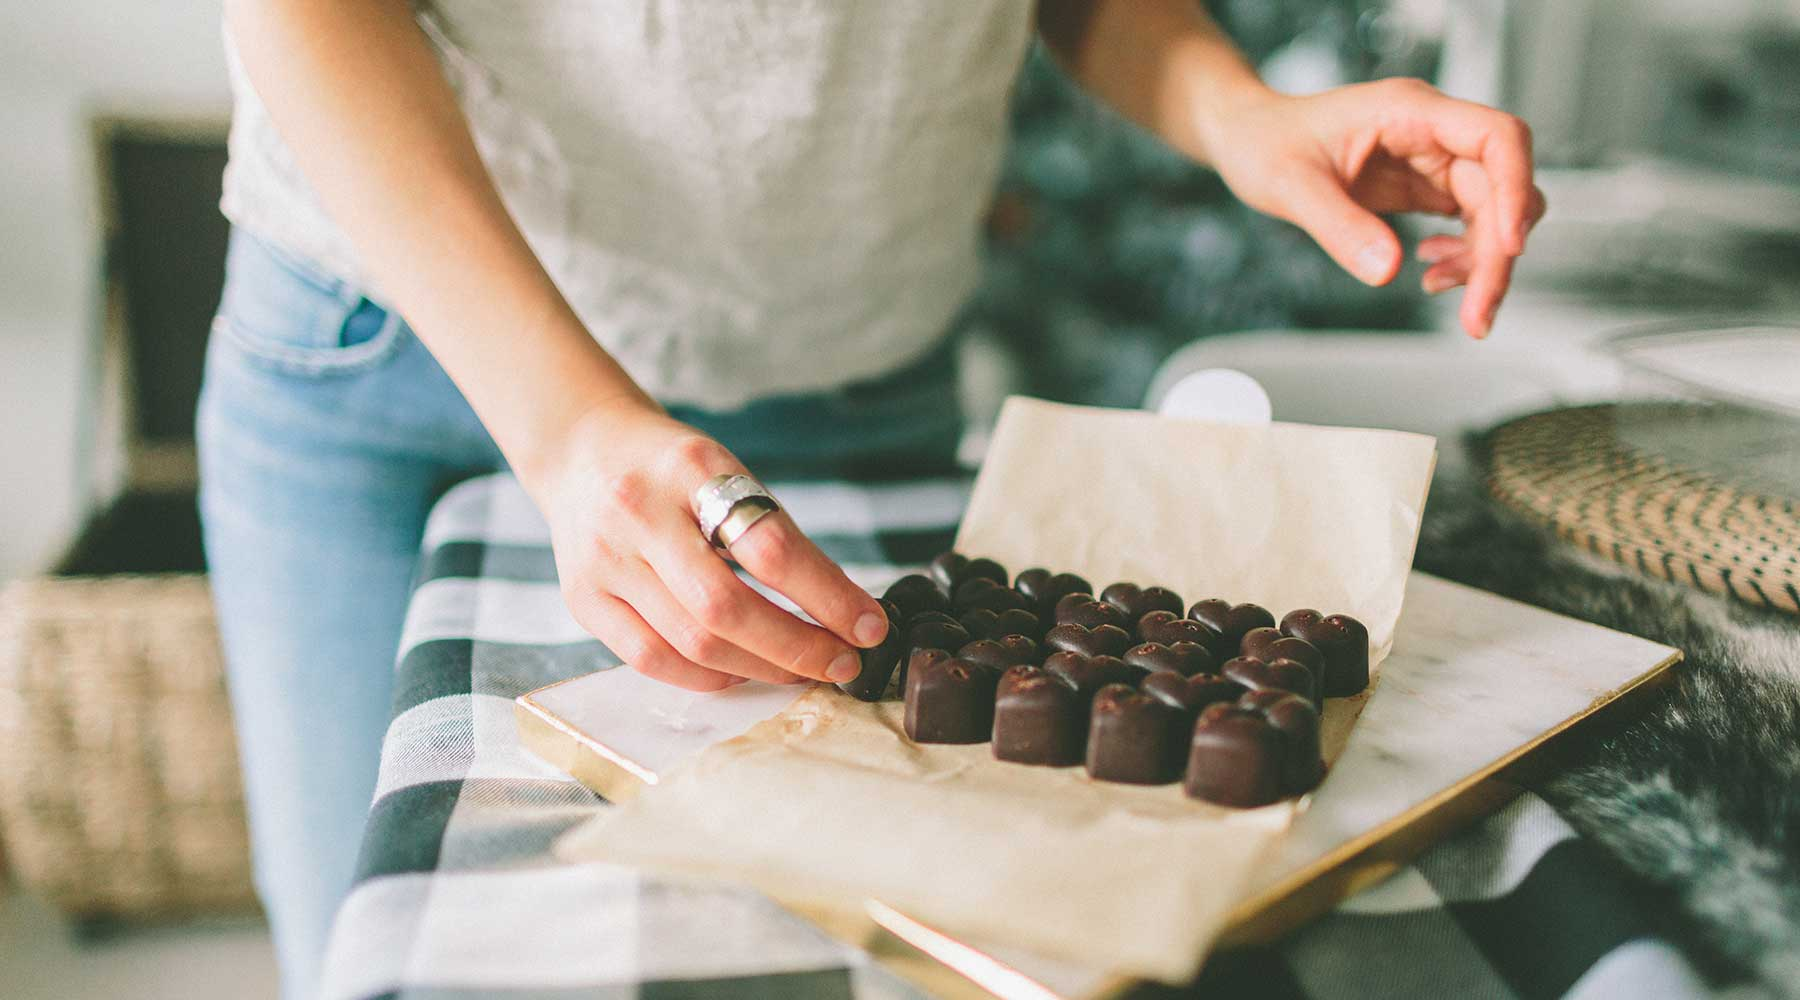 How a Sweet Passion Turned Into a Side Hustle